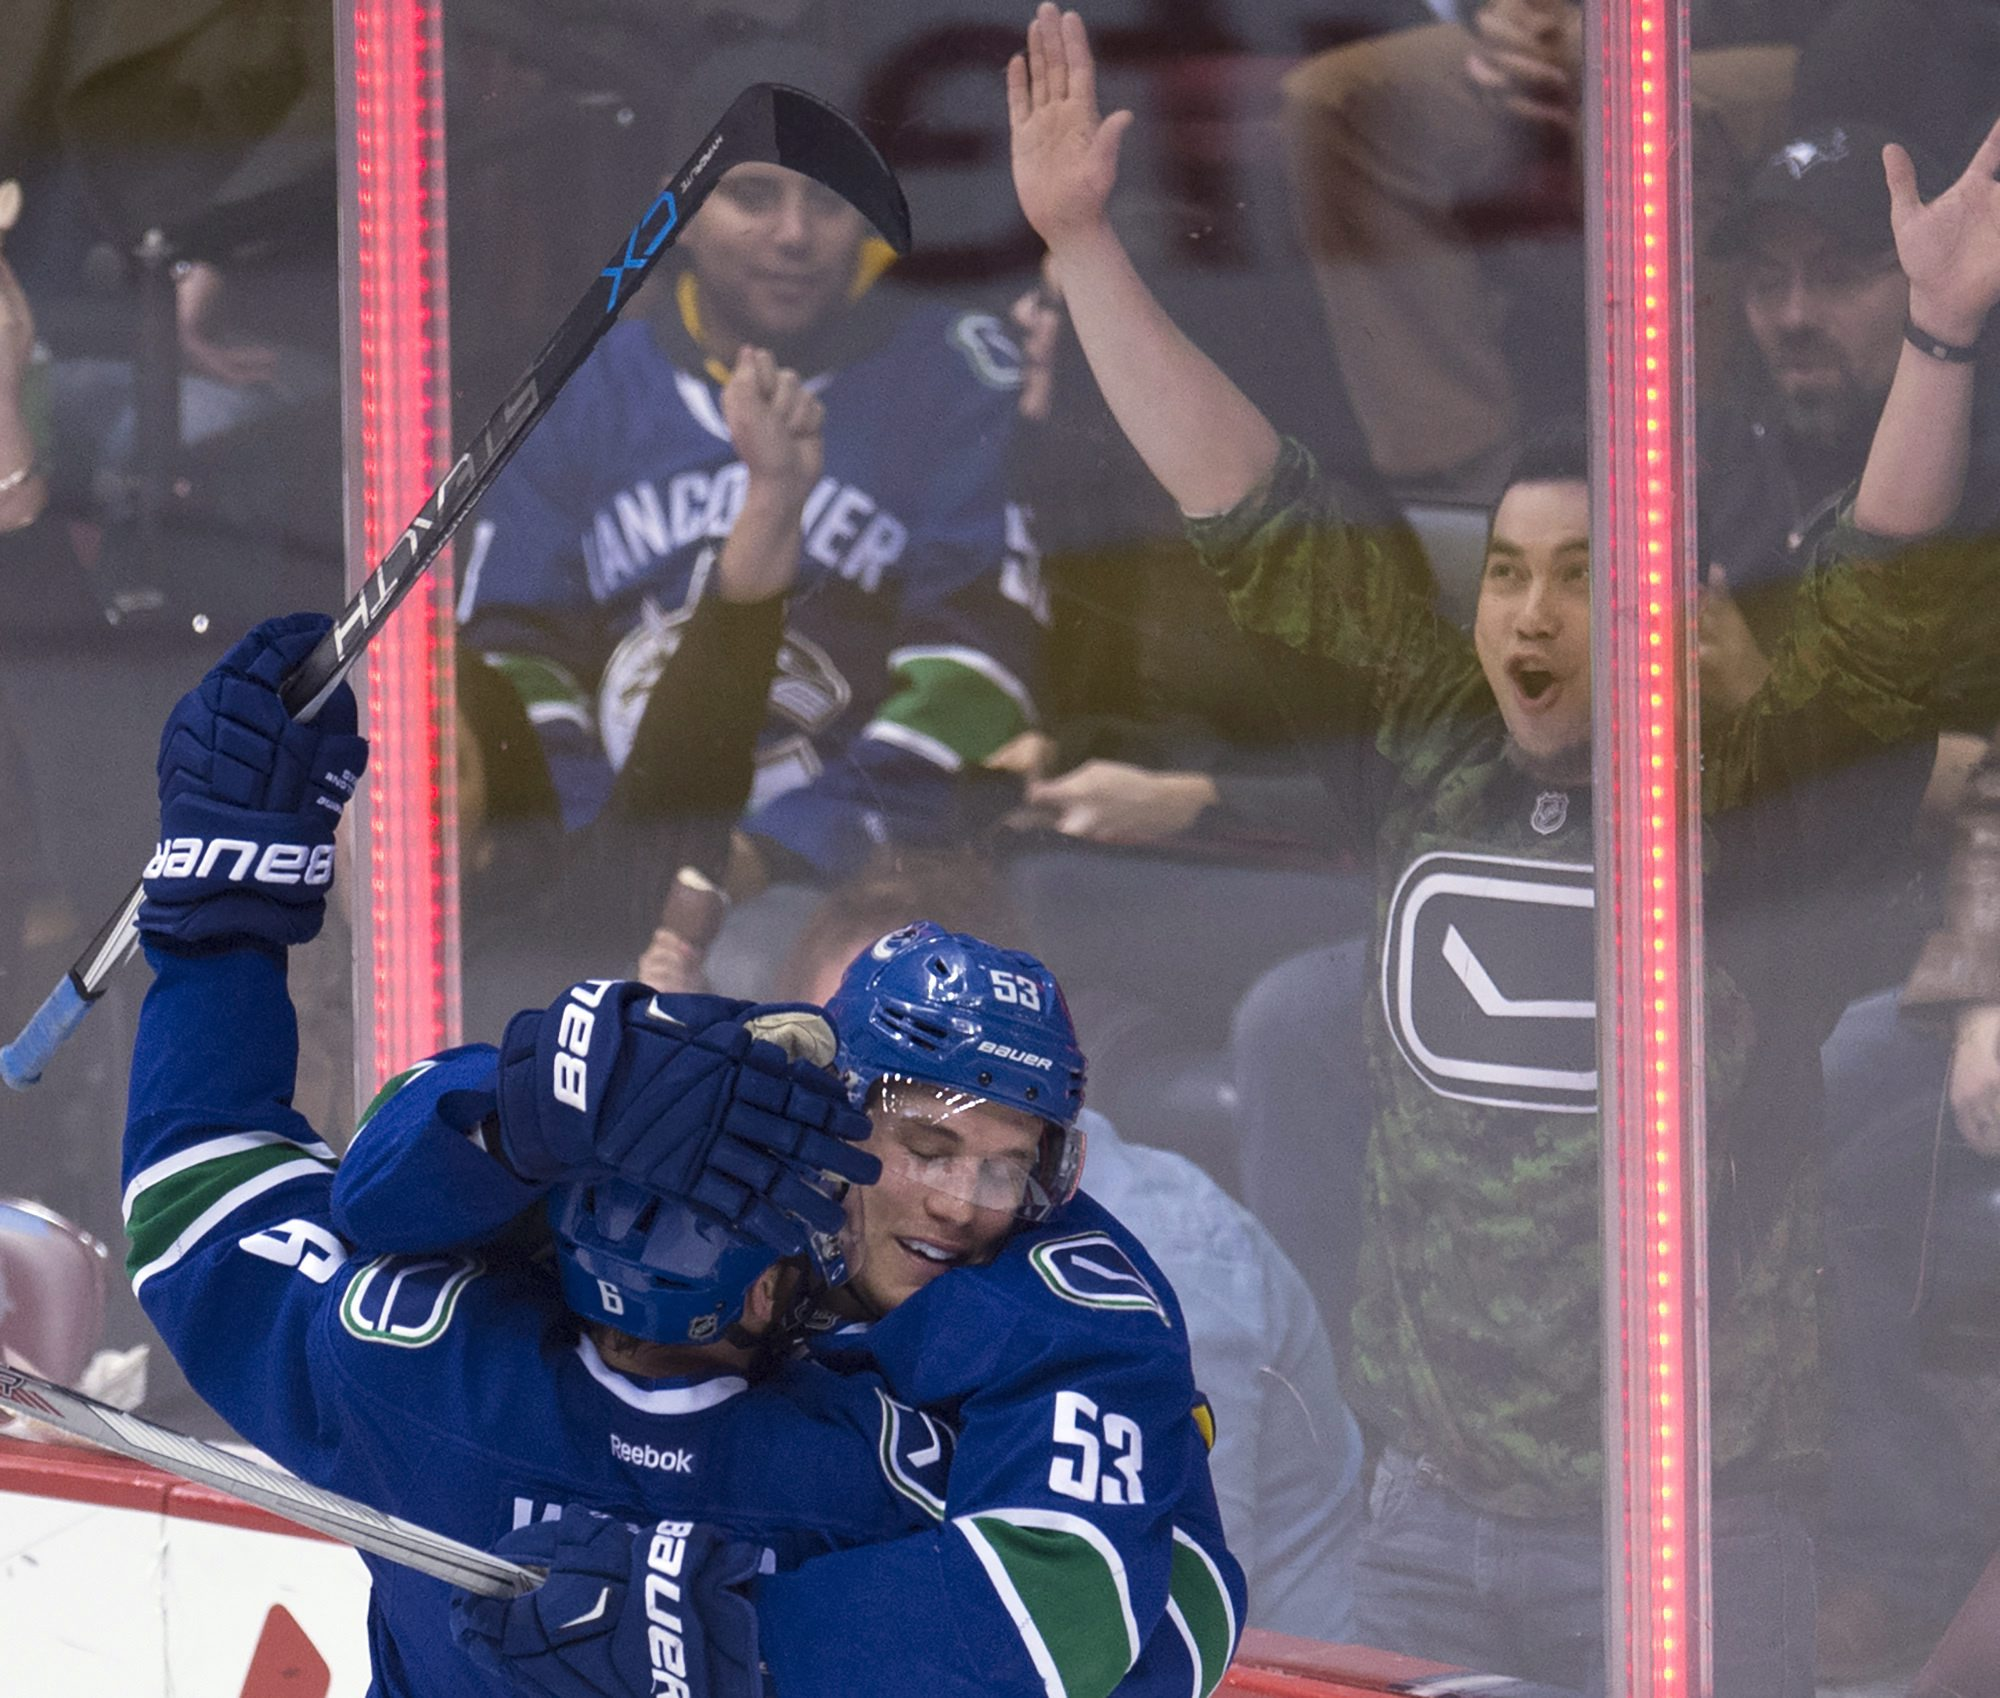 Vancouver Canucks center  Bo Horvat (53) celebrates his goal against the Nashville Predators with teammate Yannick Weber (6) during the second period of an NHL hockey game Saturday, March 12, 2016, in Vancouver, British Columbia. (Jonathan Hayward/The Can